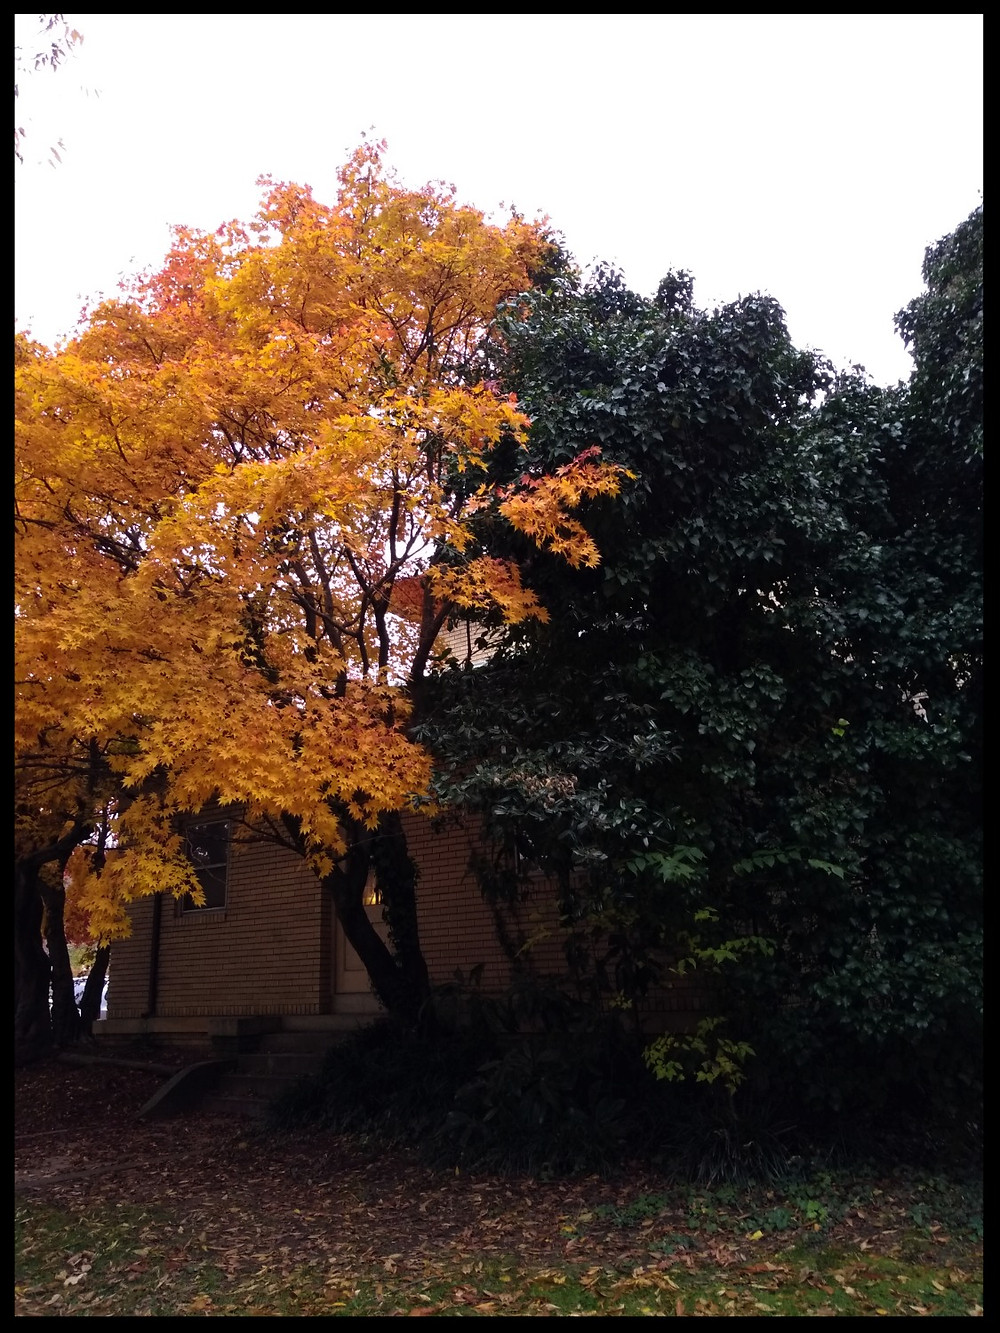 The trees are beautiful here. These two next to each other provided a great contrast of colors.